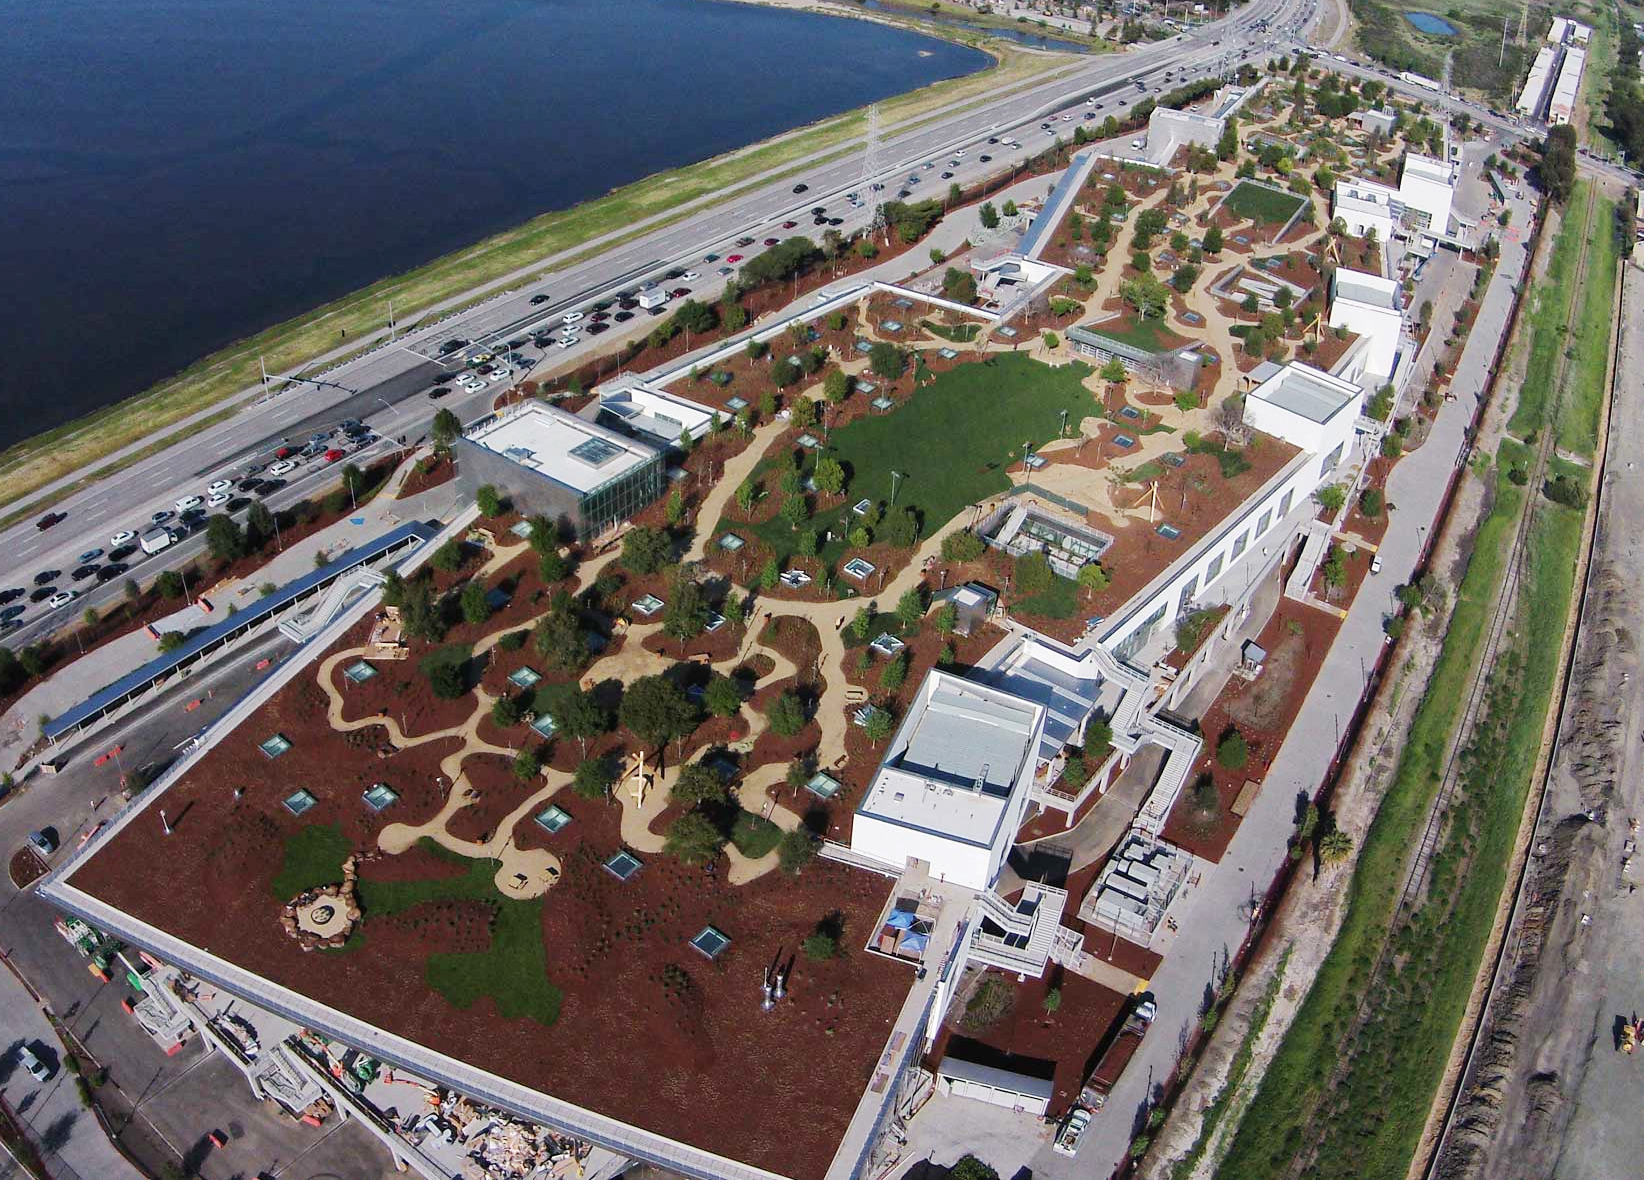 An aerial view of Facebook's new campus, an expansion of its current headquarters in Menlo Park, Calif. The LEED-certified building, known as MPK 20, has a 9-acre  green roof.